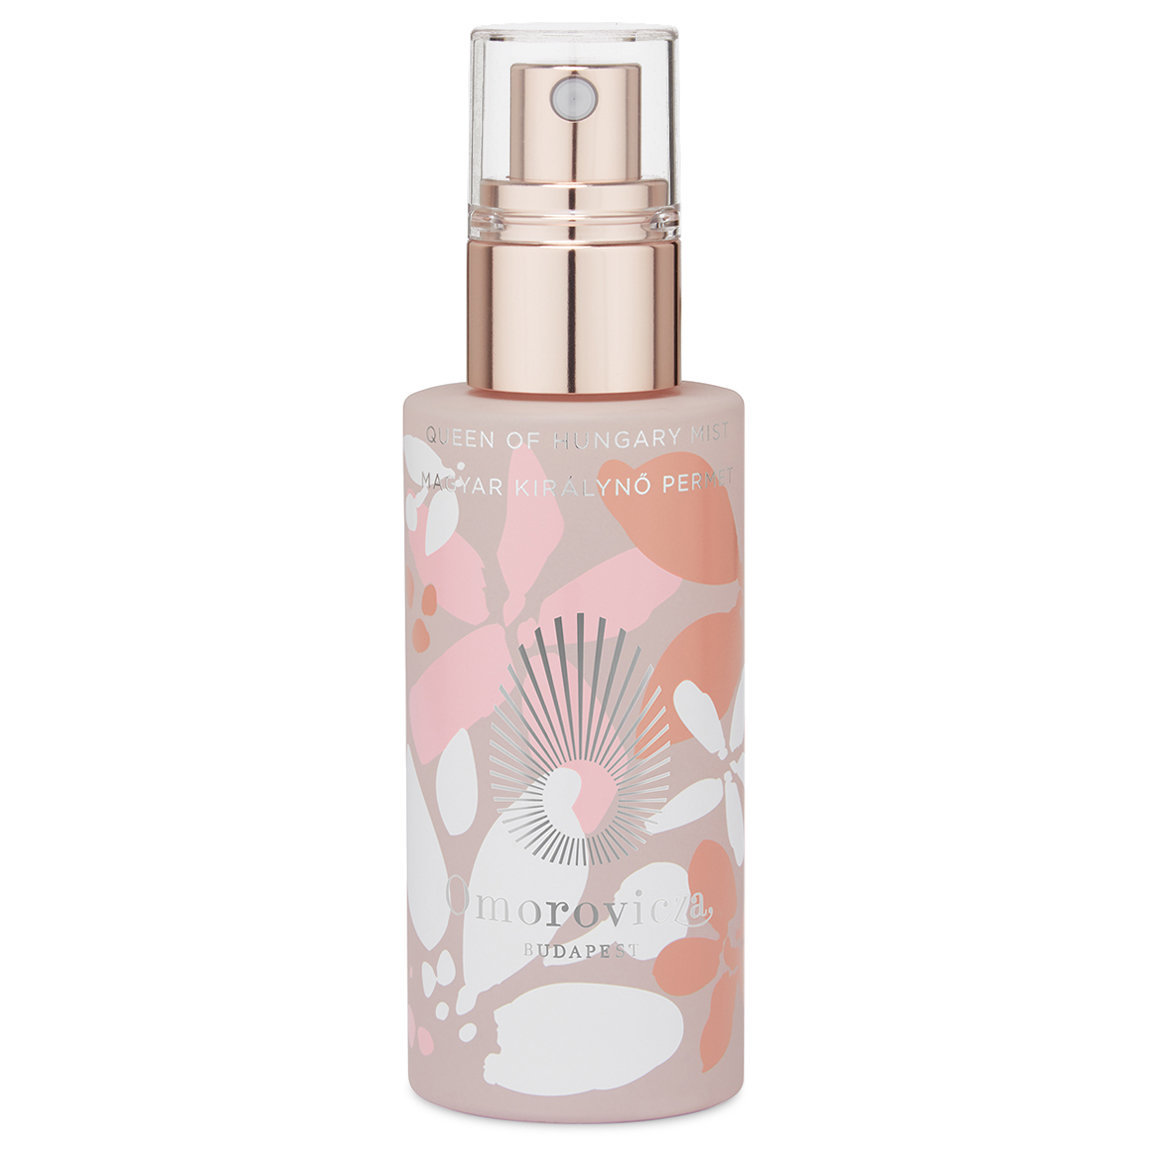 Omorovicza Queen of Hungary Mist 50 ml Limited Edition product swatch.